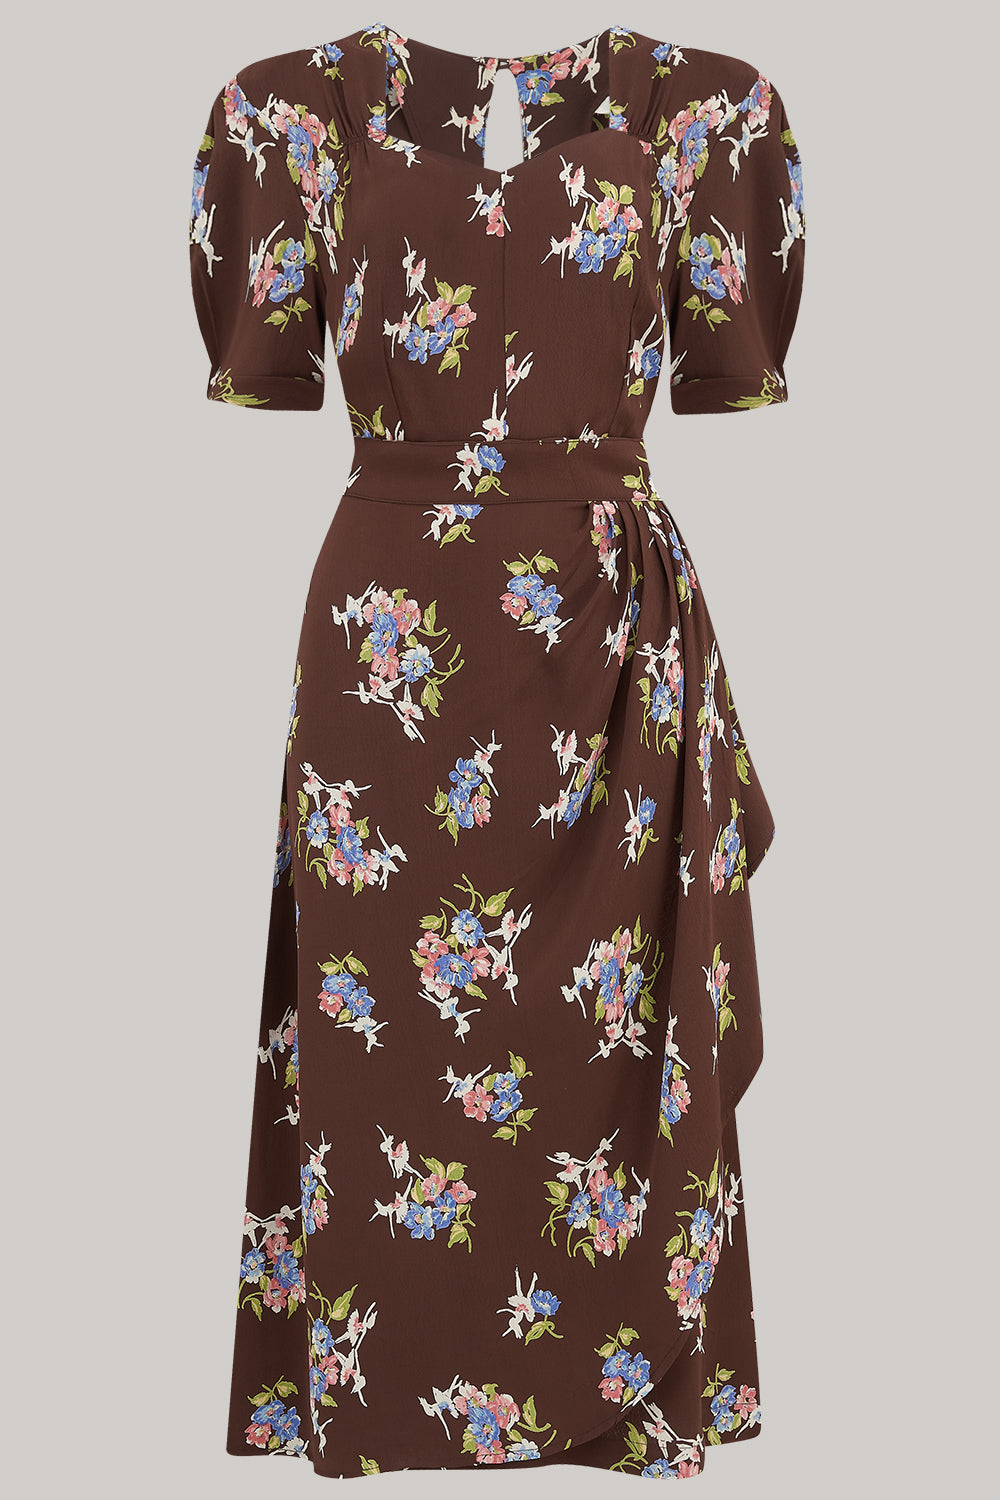 Shelly Dress in Brown Floral, A Classic 1940s Inspired wiggle dress, True Vintage Style - RocknRomance True 1940s & 1950s Vintage Style